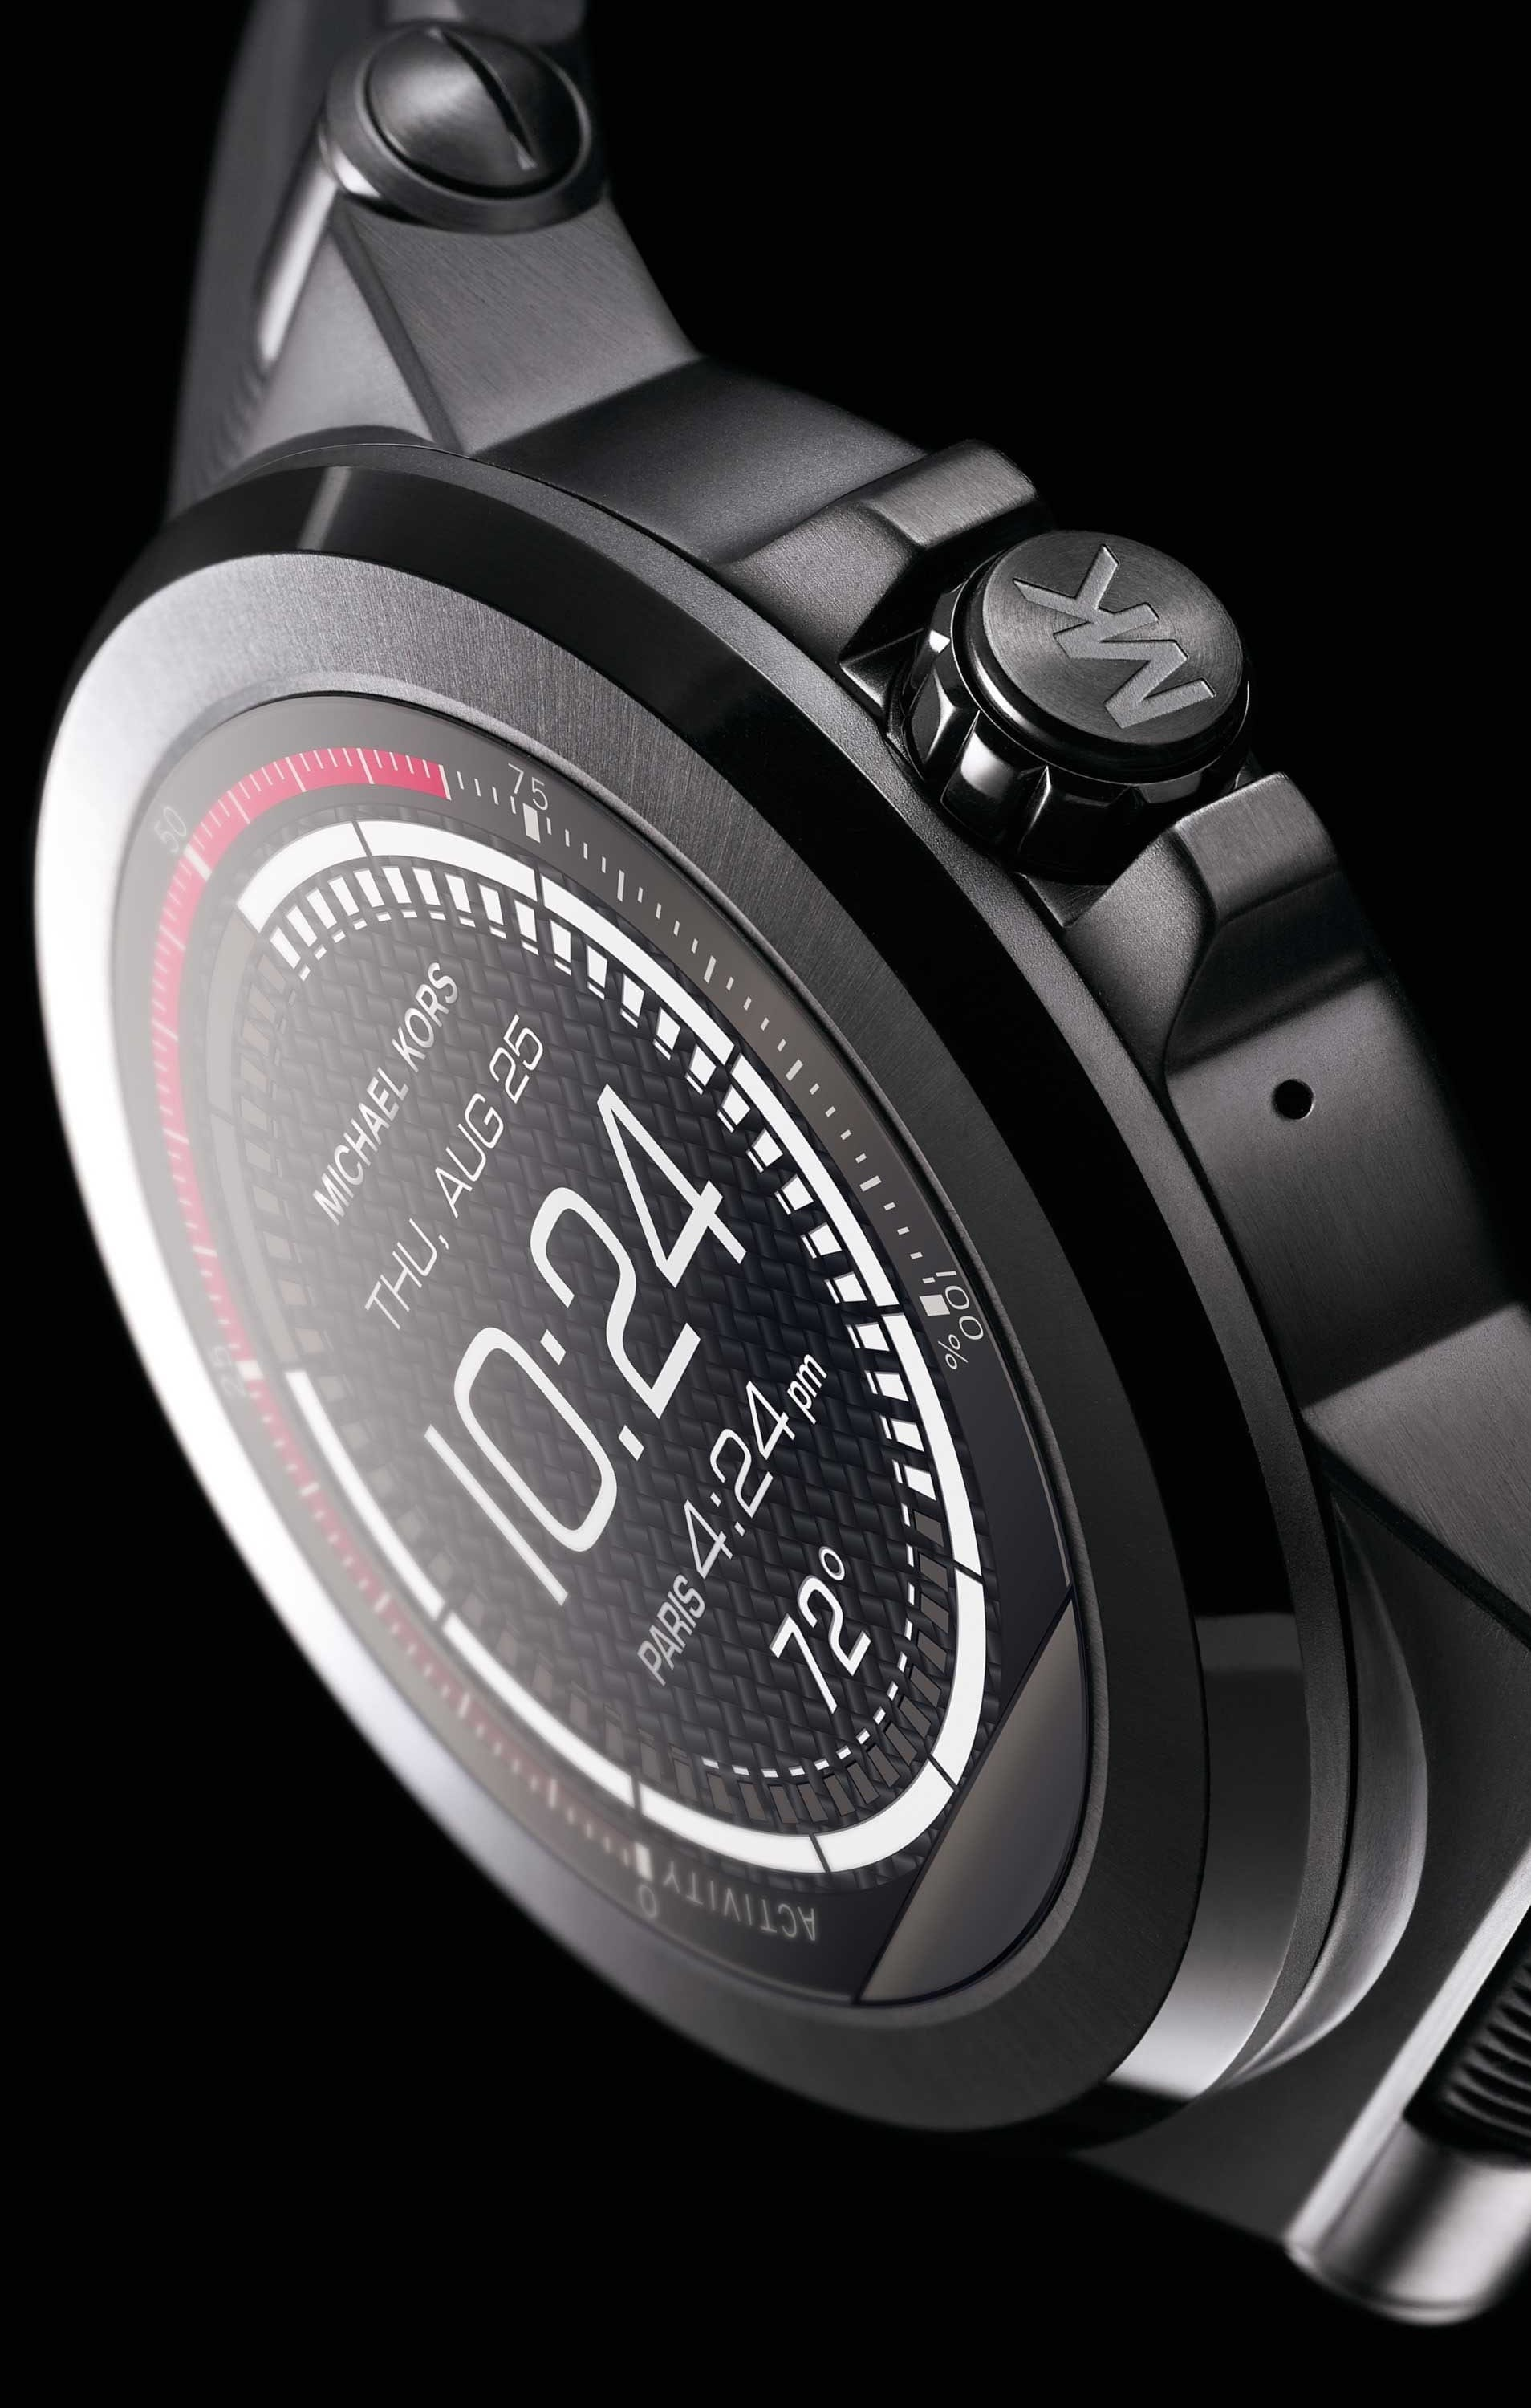 father's day gifts- smart watch